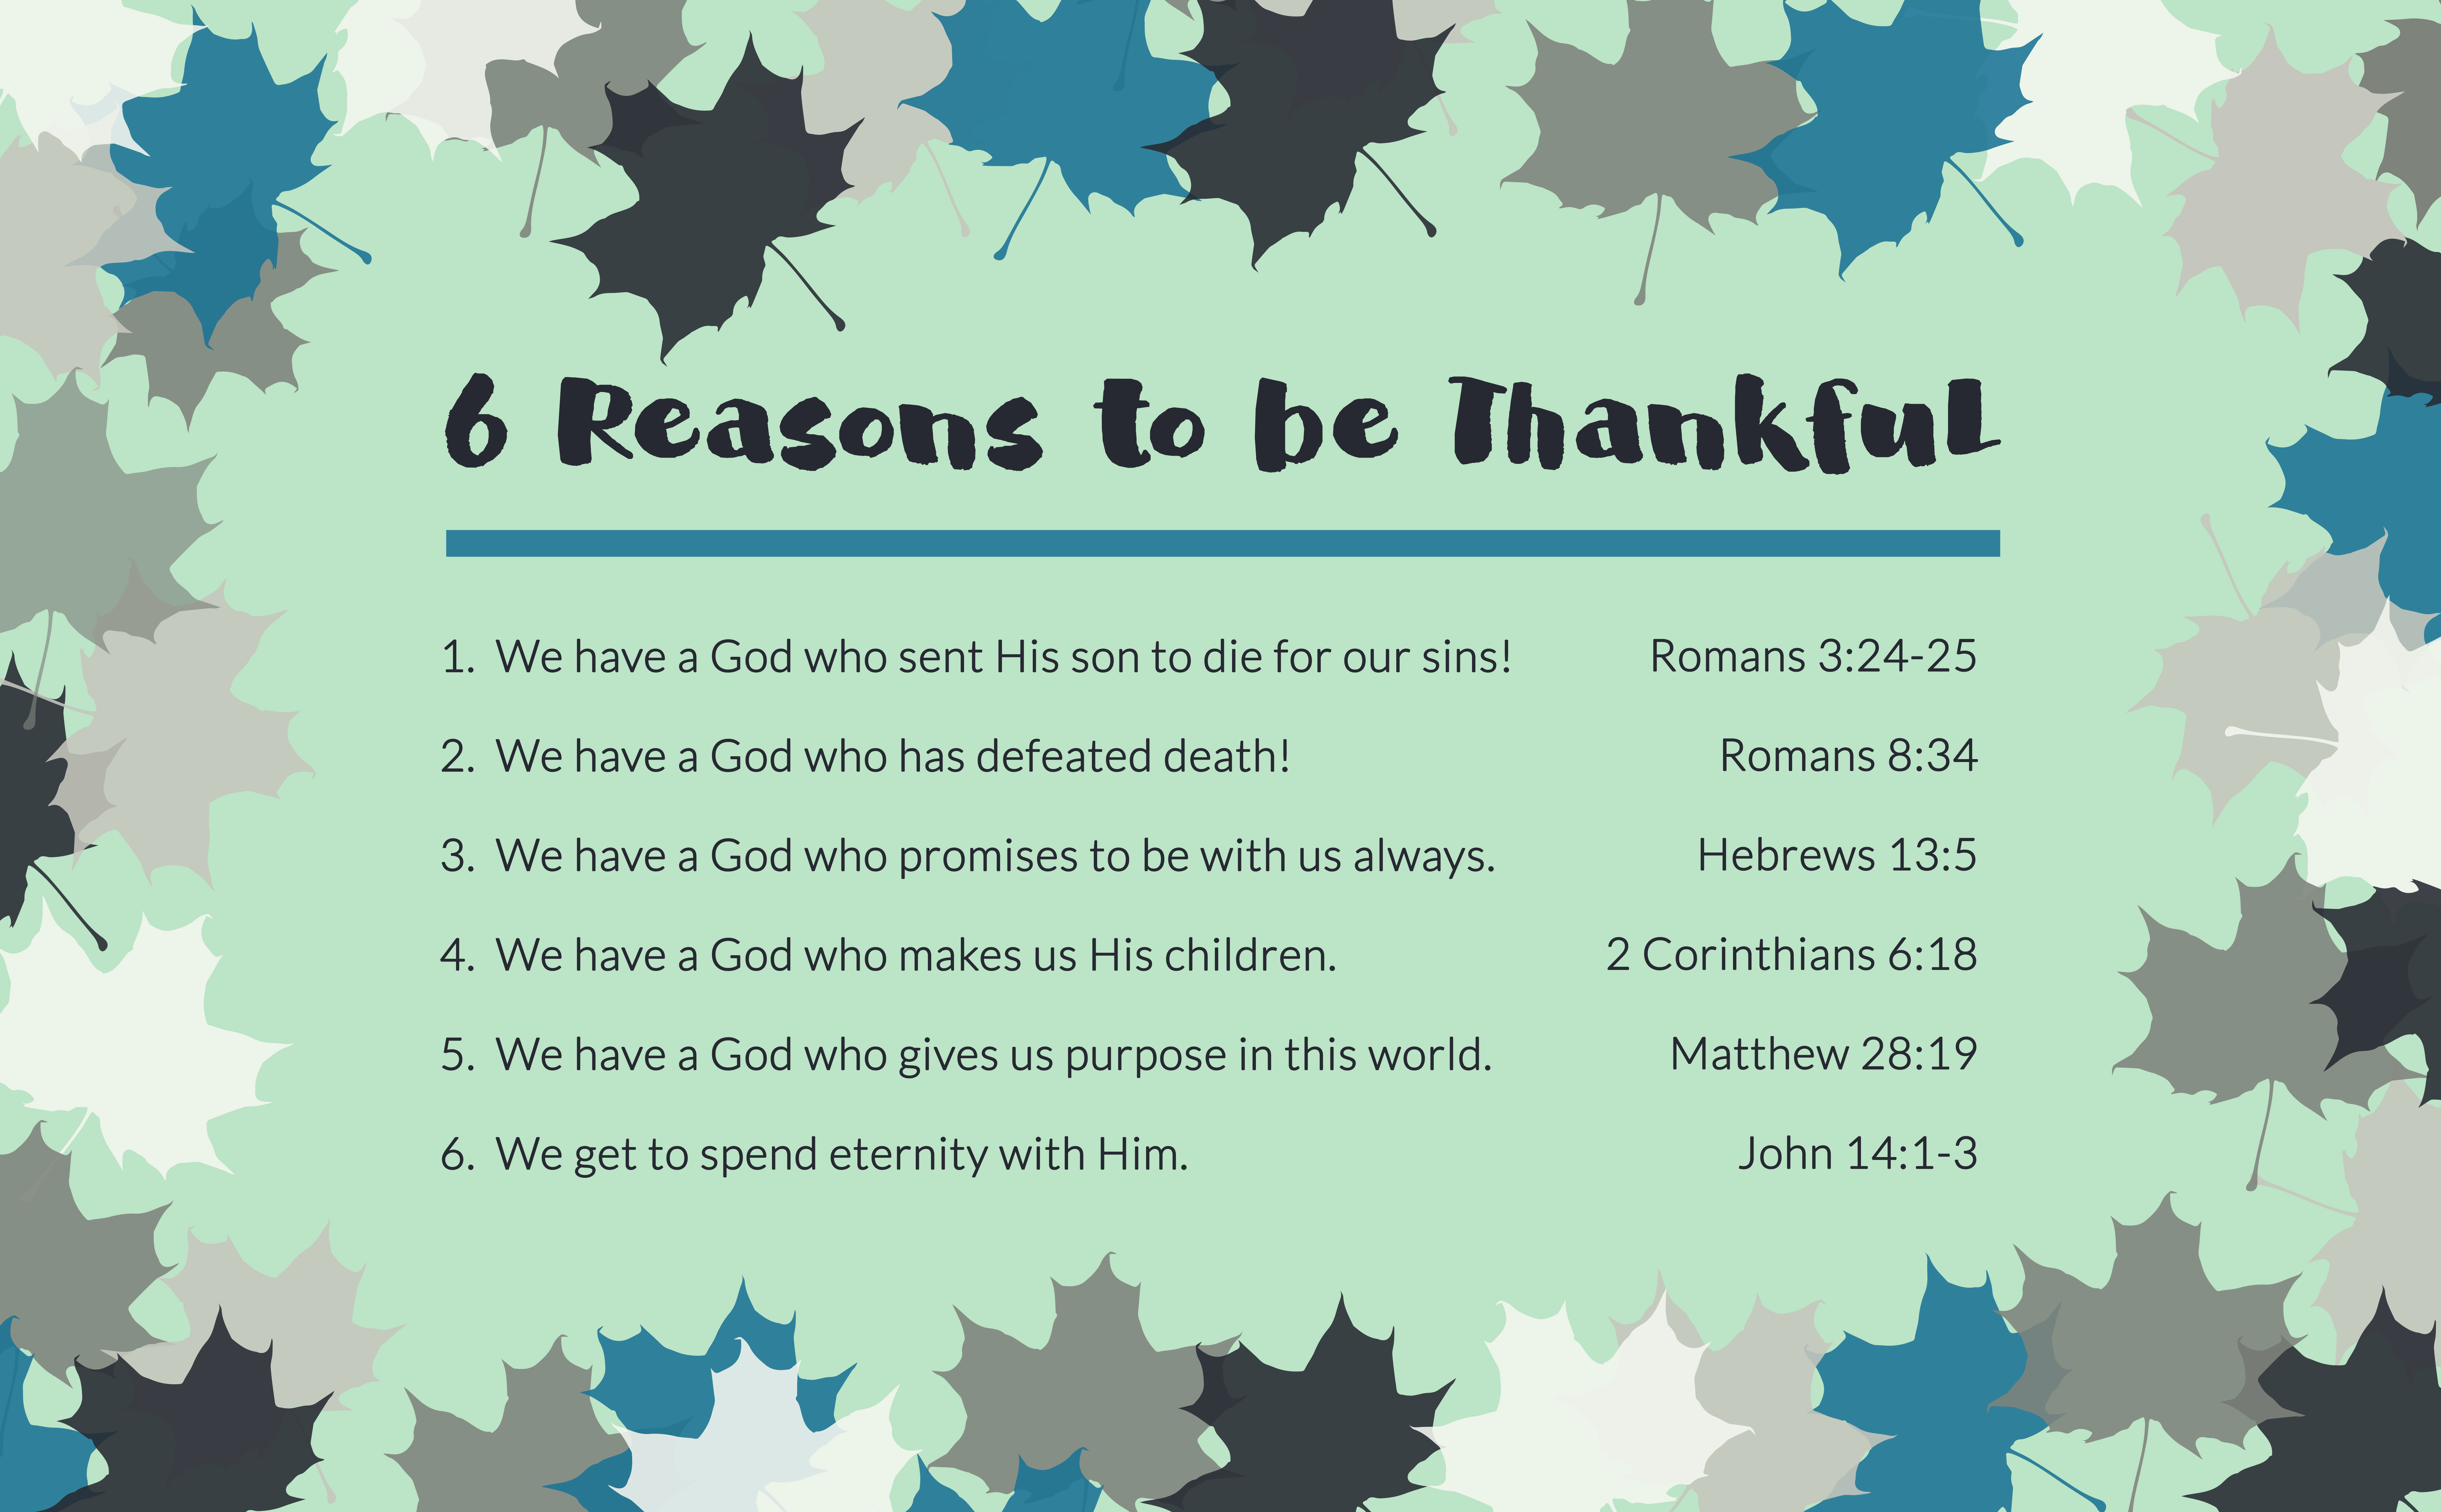 6 Reasons To Be Thankful